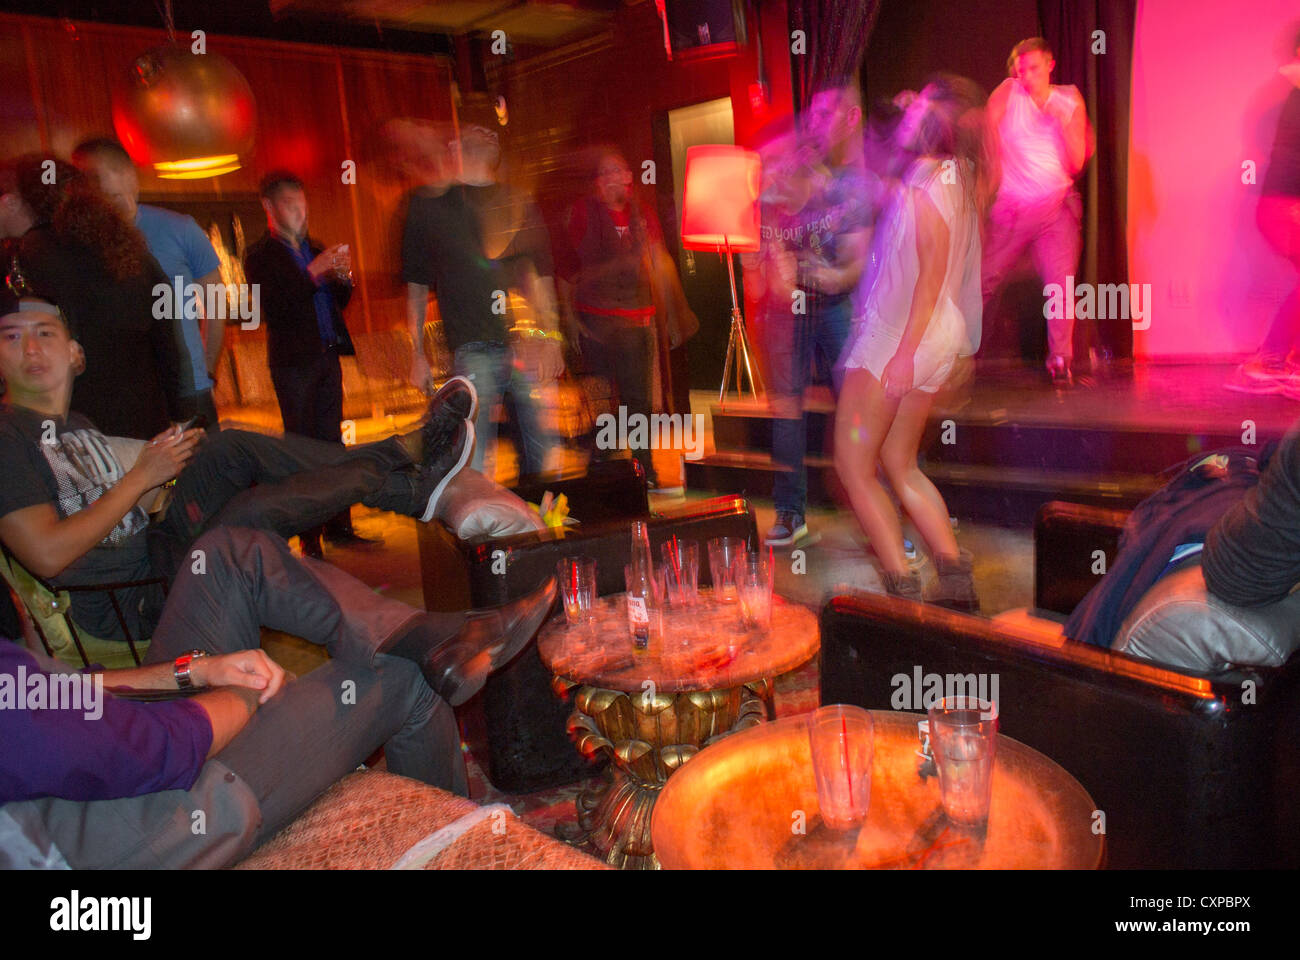 Gay bars usa